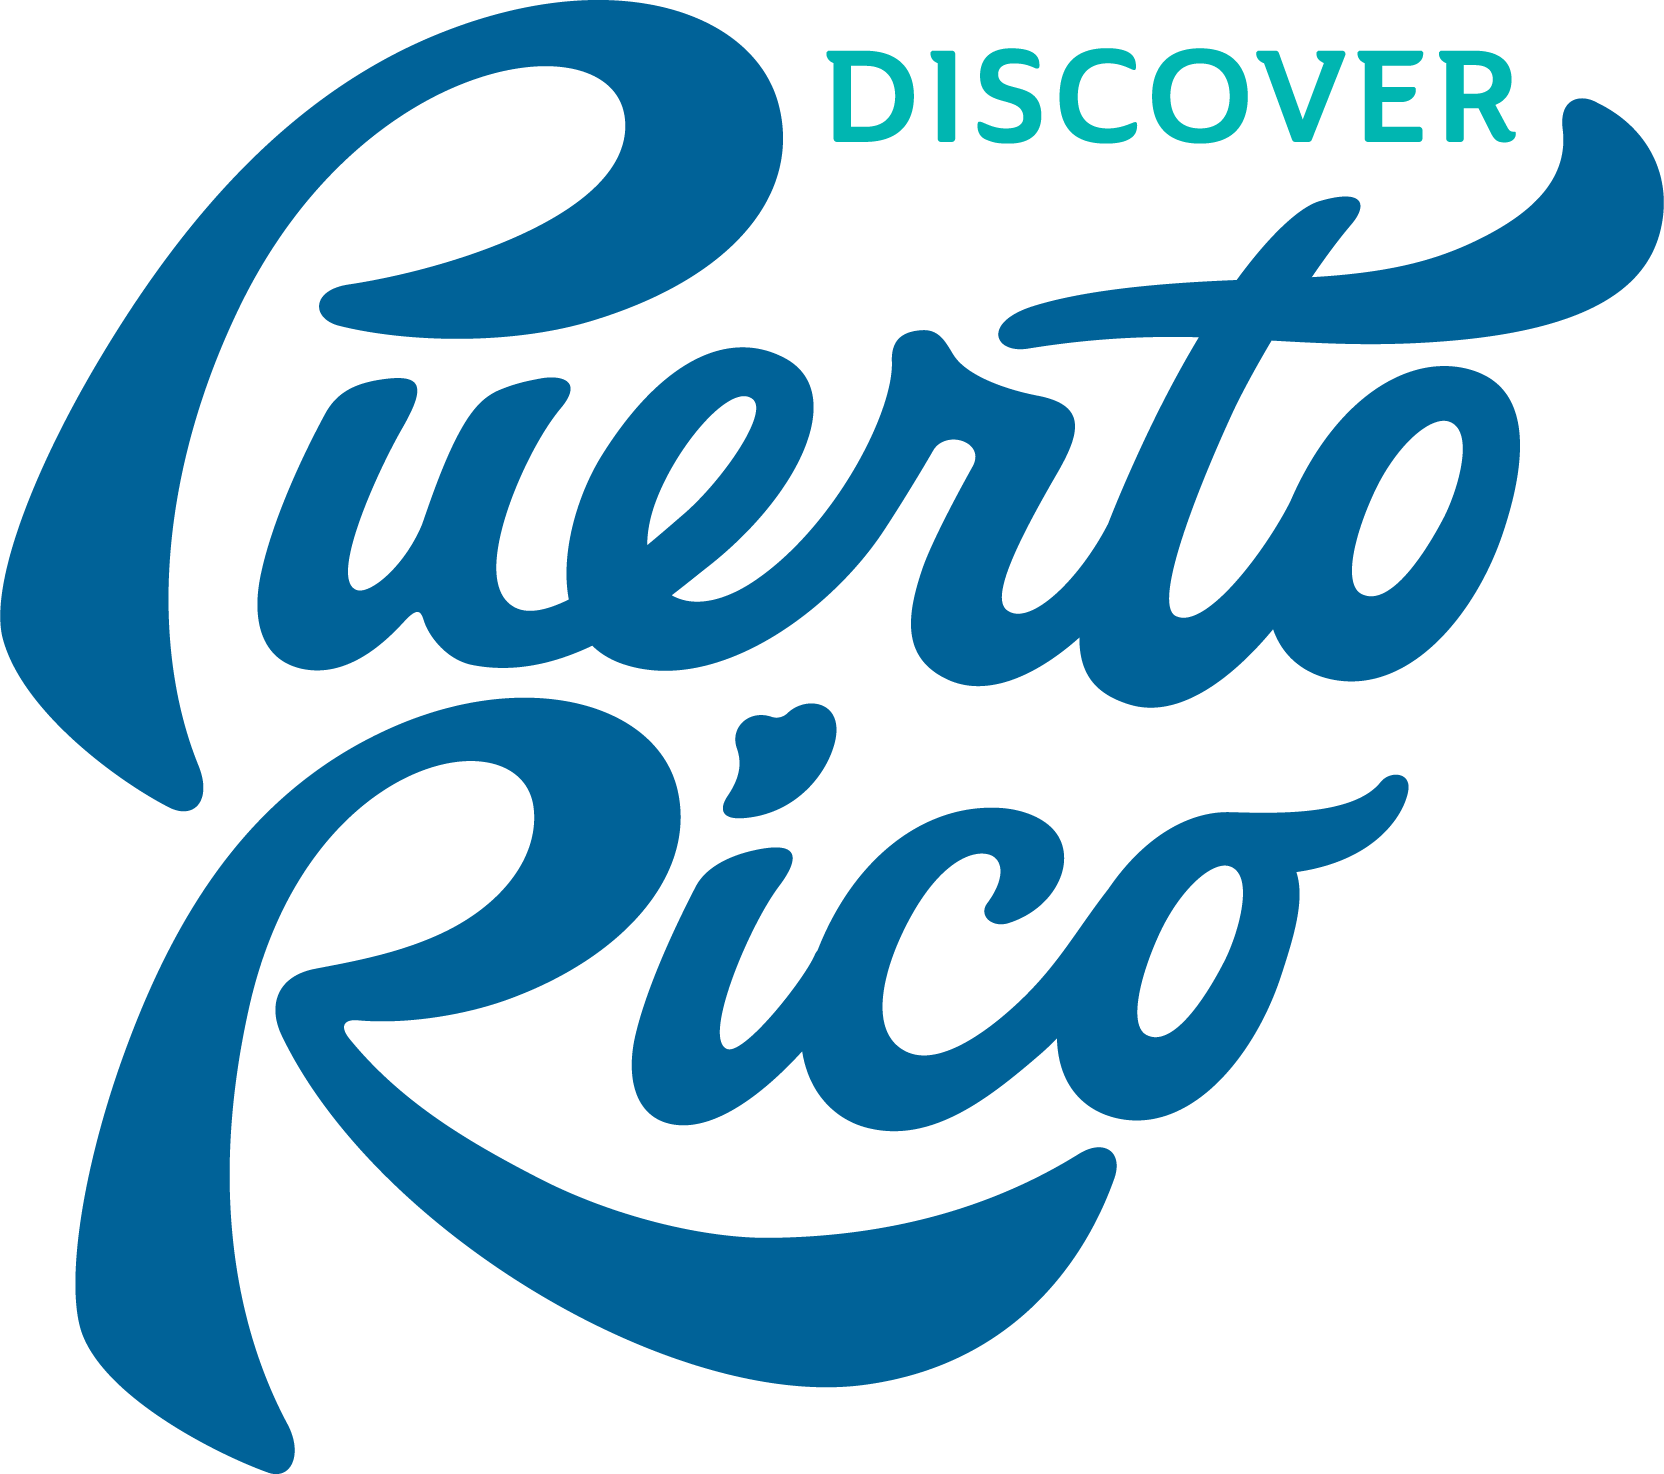 discover puerto rico.png